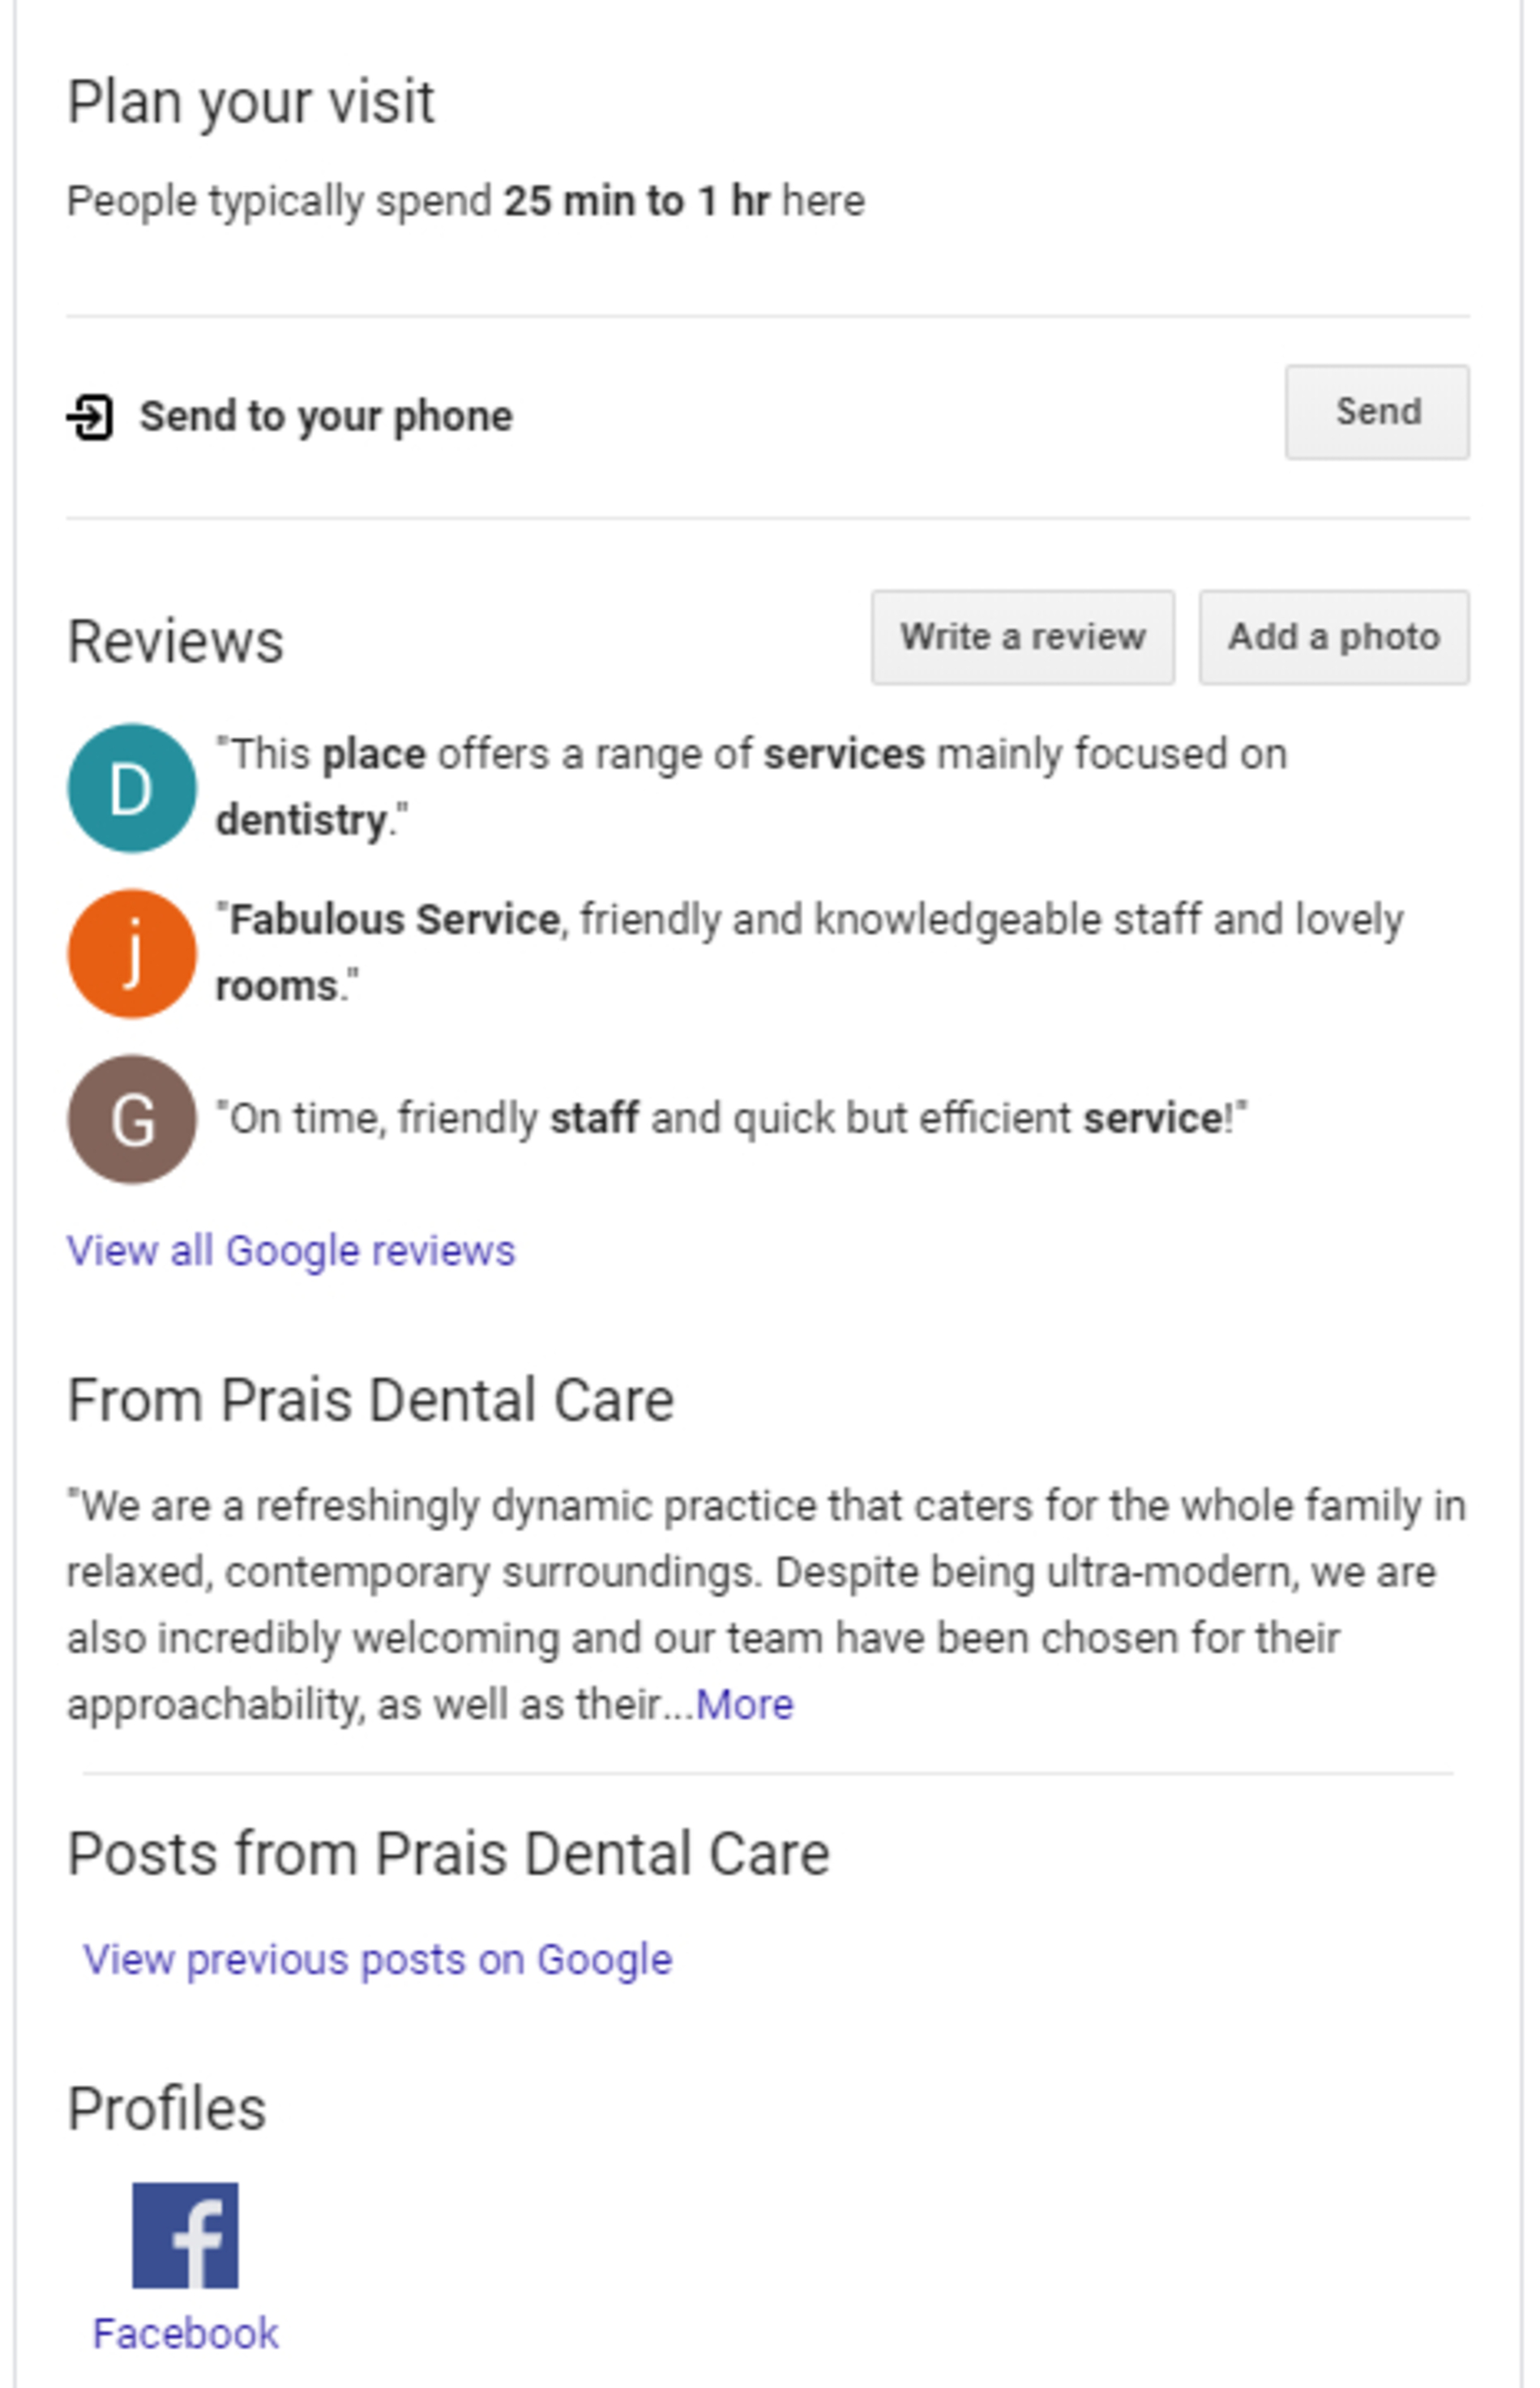 Google results for Plan your visit to Prais Dental Care.